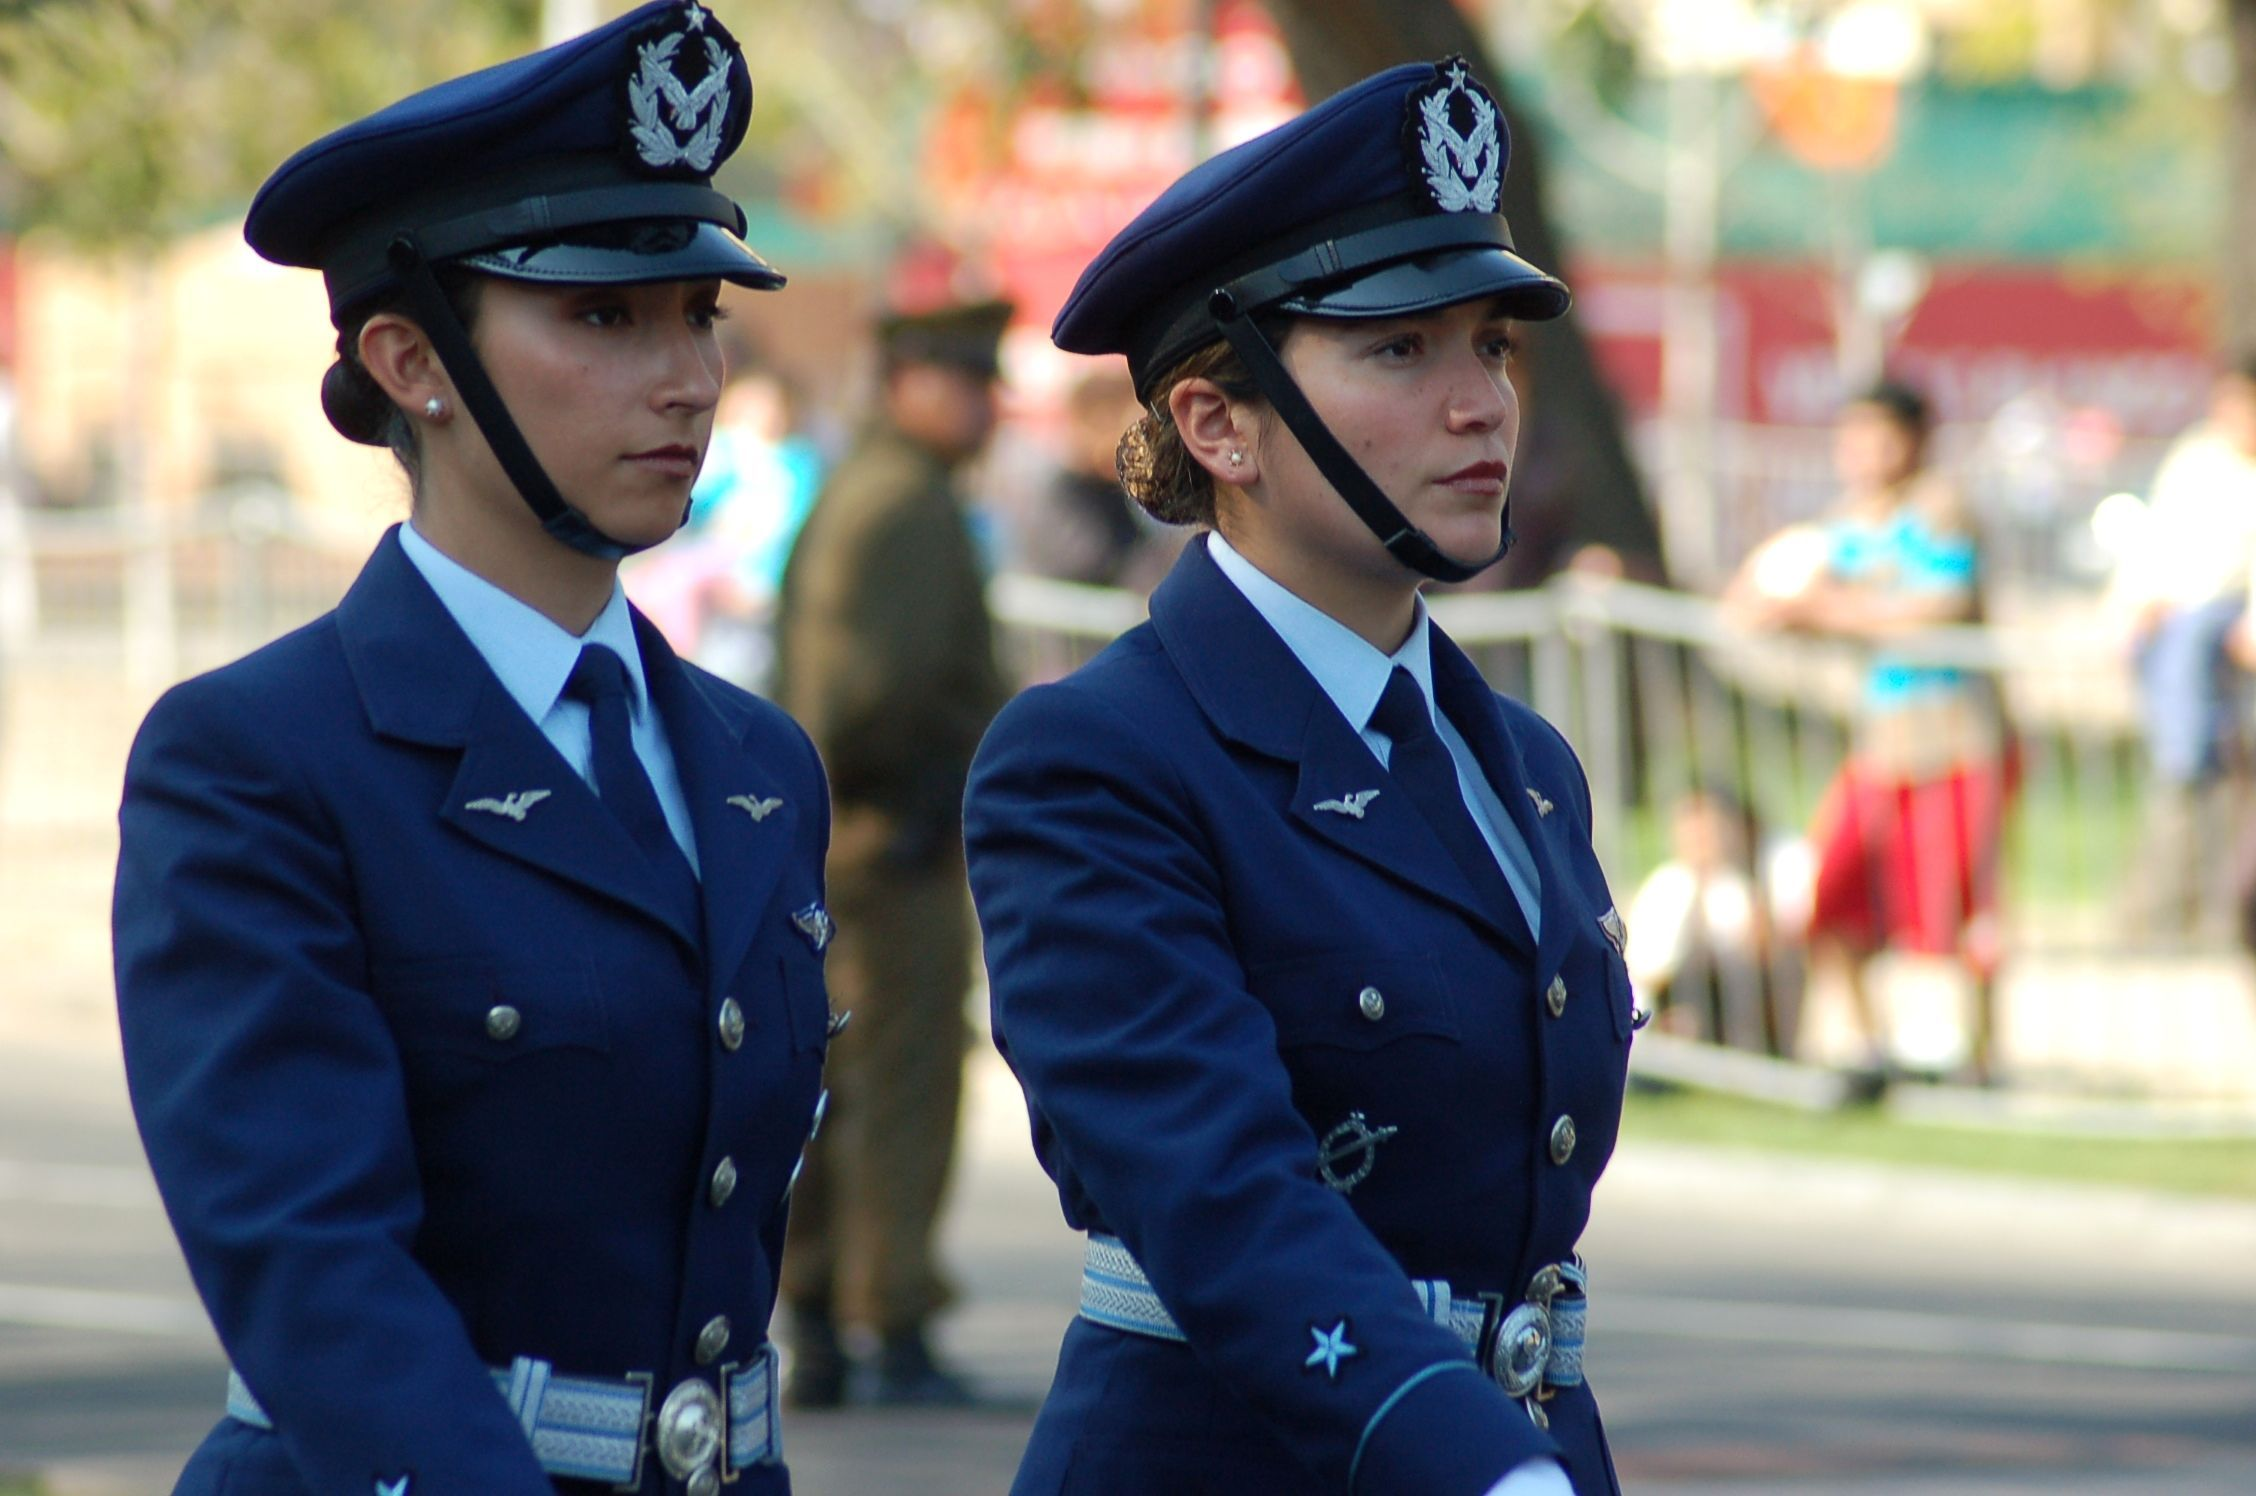 Chilean Air Force Members Image Females In Uniform Lovers Group Female Soldier Military Women Female [ 1496 x 2256 Pixel ]